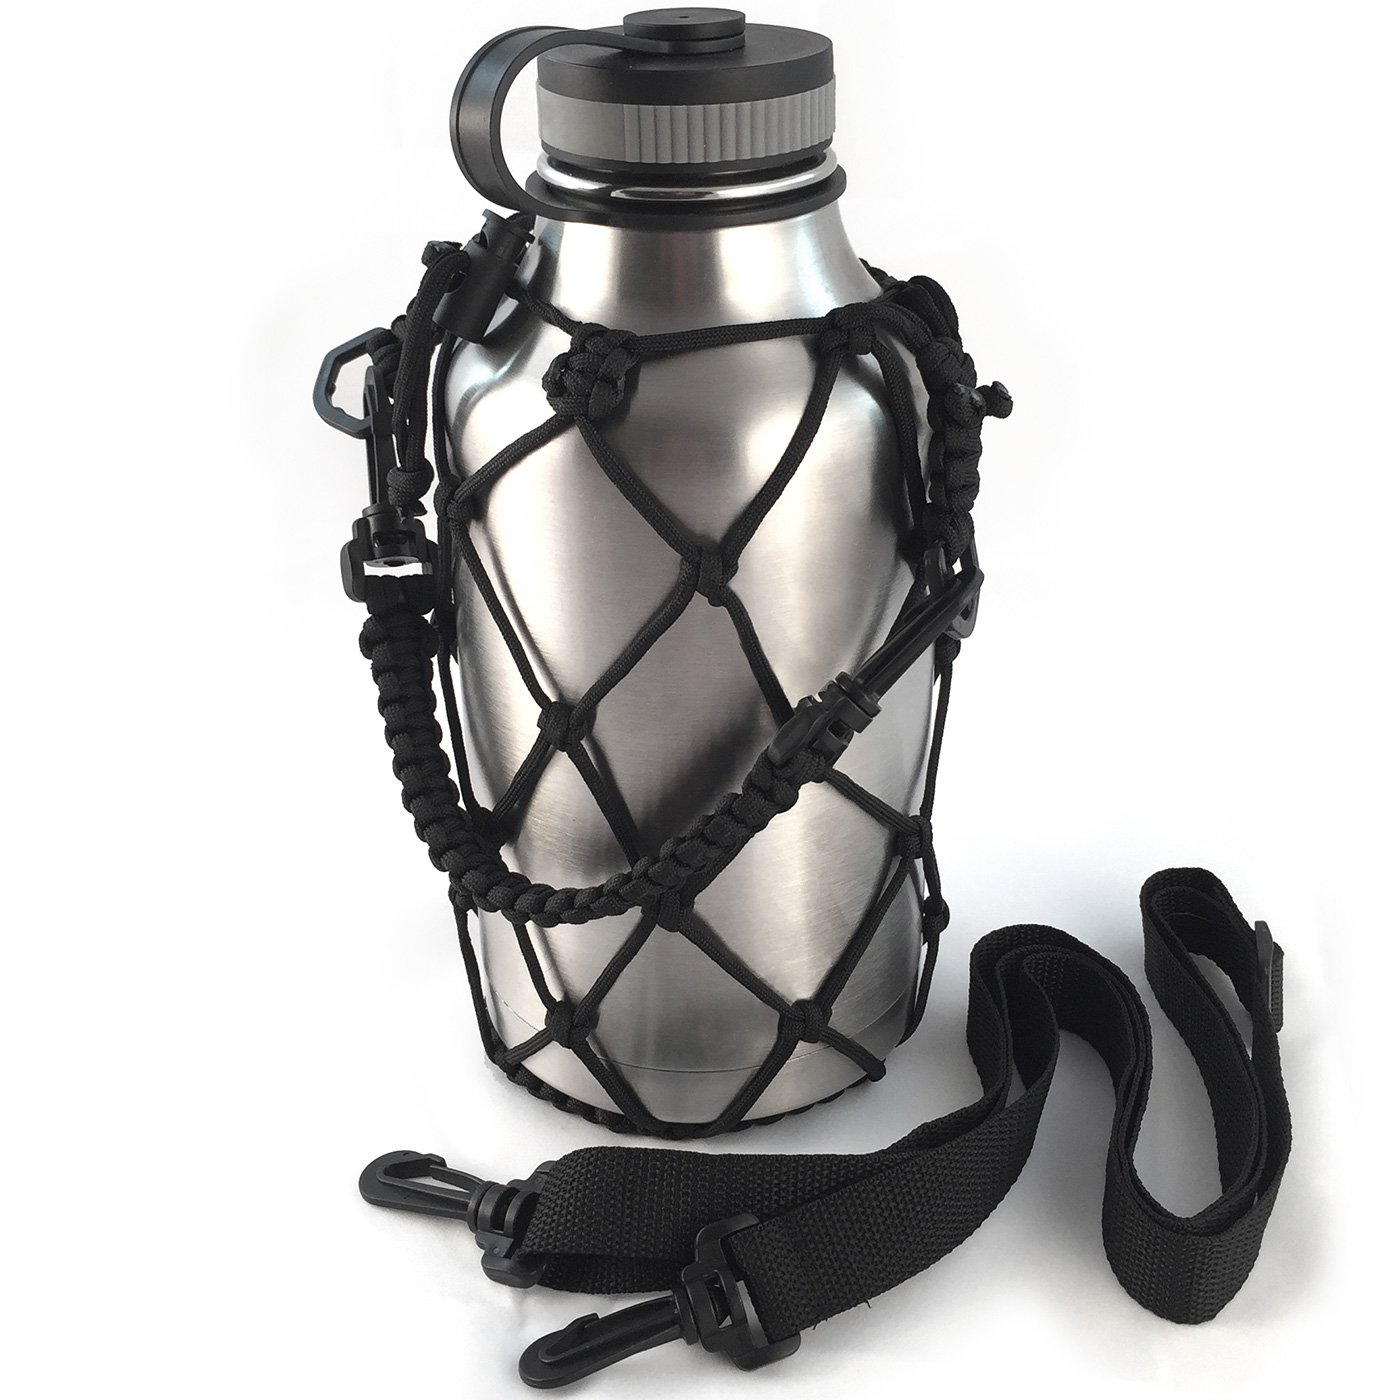 Gearproz HydroNet Carrier for Water Bottles - Fits Wide Mouth Hydro Flask 64 oz Growler - From America's #1 in Paracord Bottle Handles and Accessories - Sturdy, Prevents Dropping and Dents (64oz)